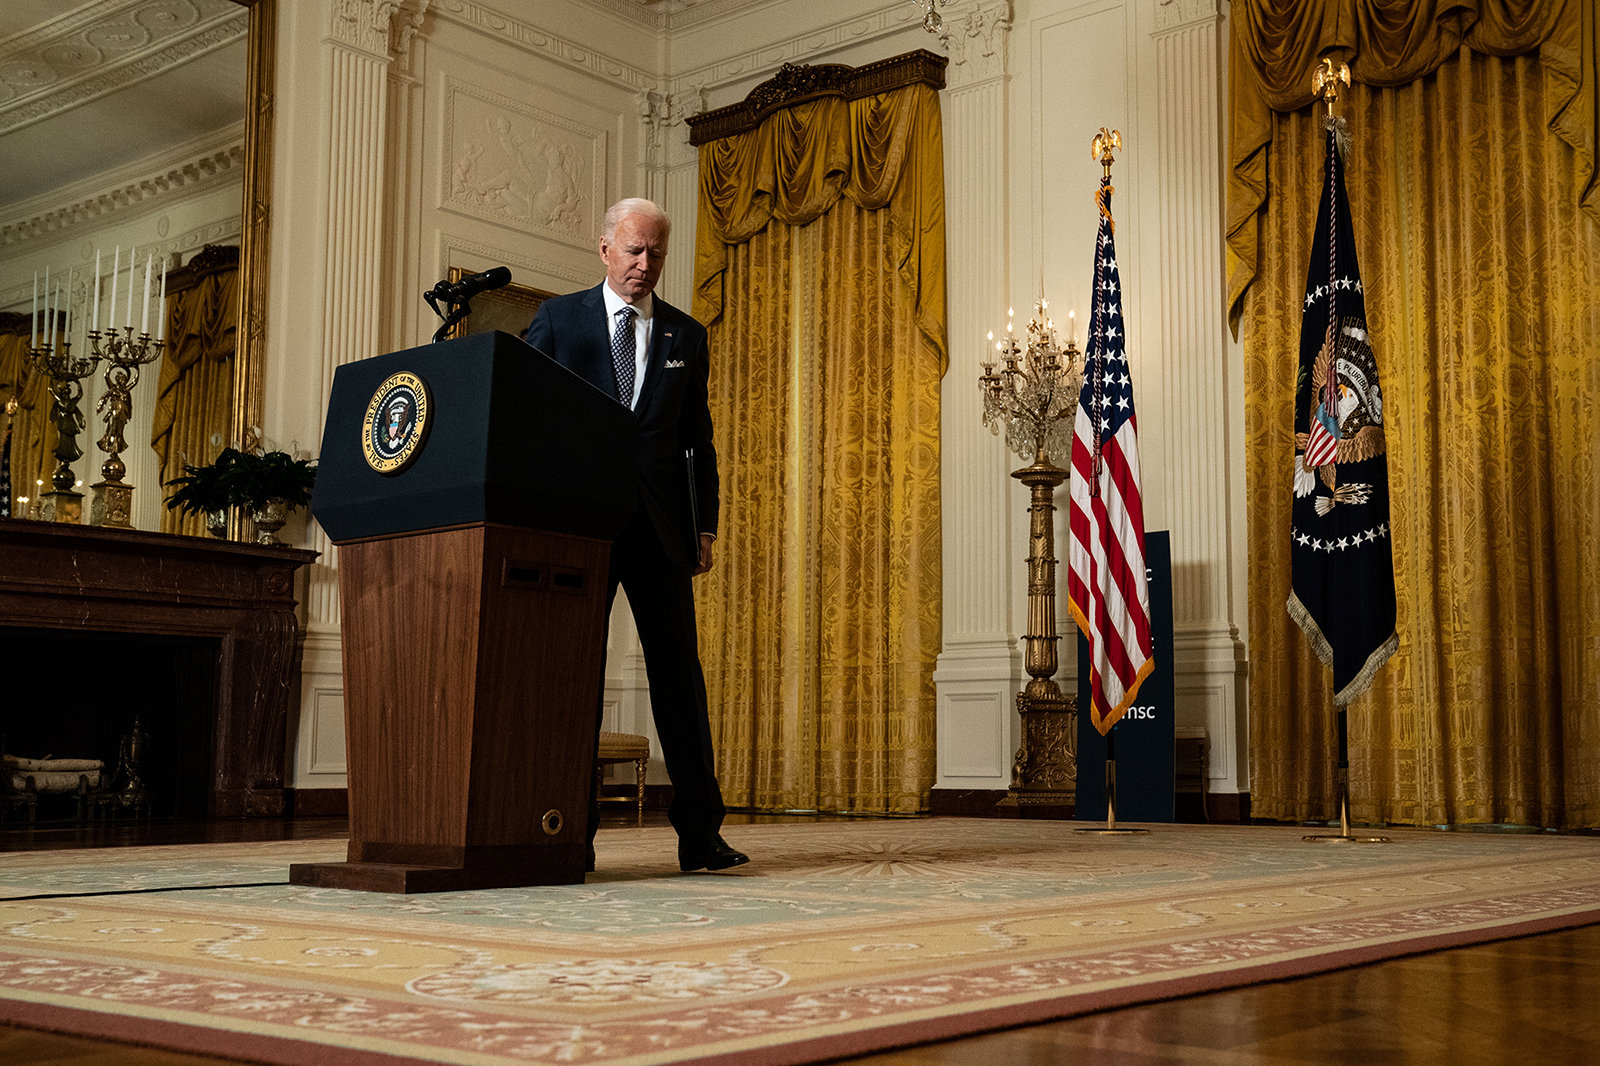 President Joe Biden departs after delivering remarks at a virtual event hosted by the Munich Security Conference in the East Room of the White House on February 19, in Washington, DC.